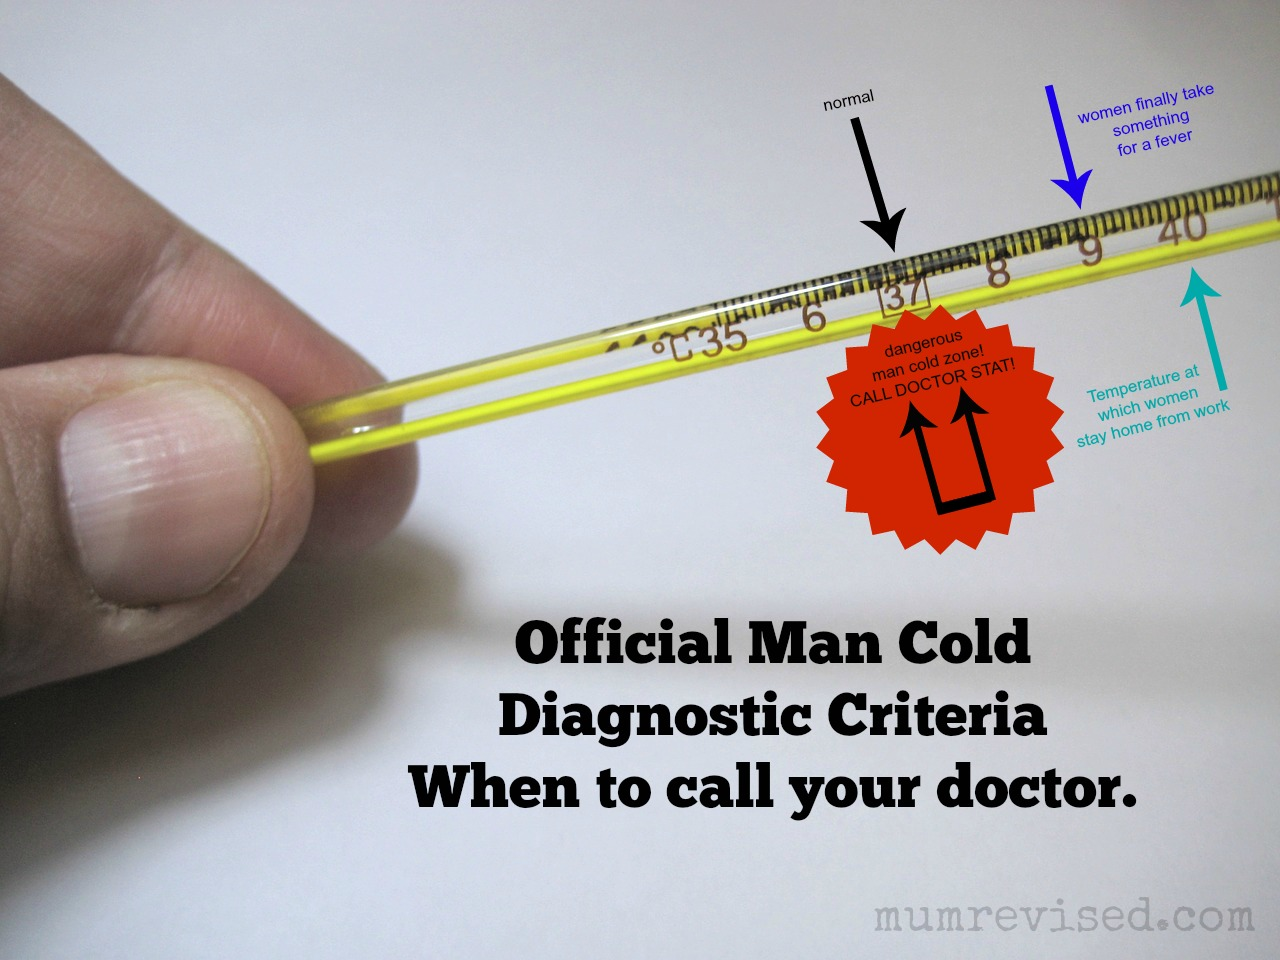 Man Cold vs The Period: An Unfair Comparison